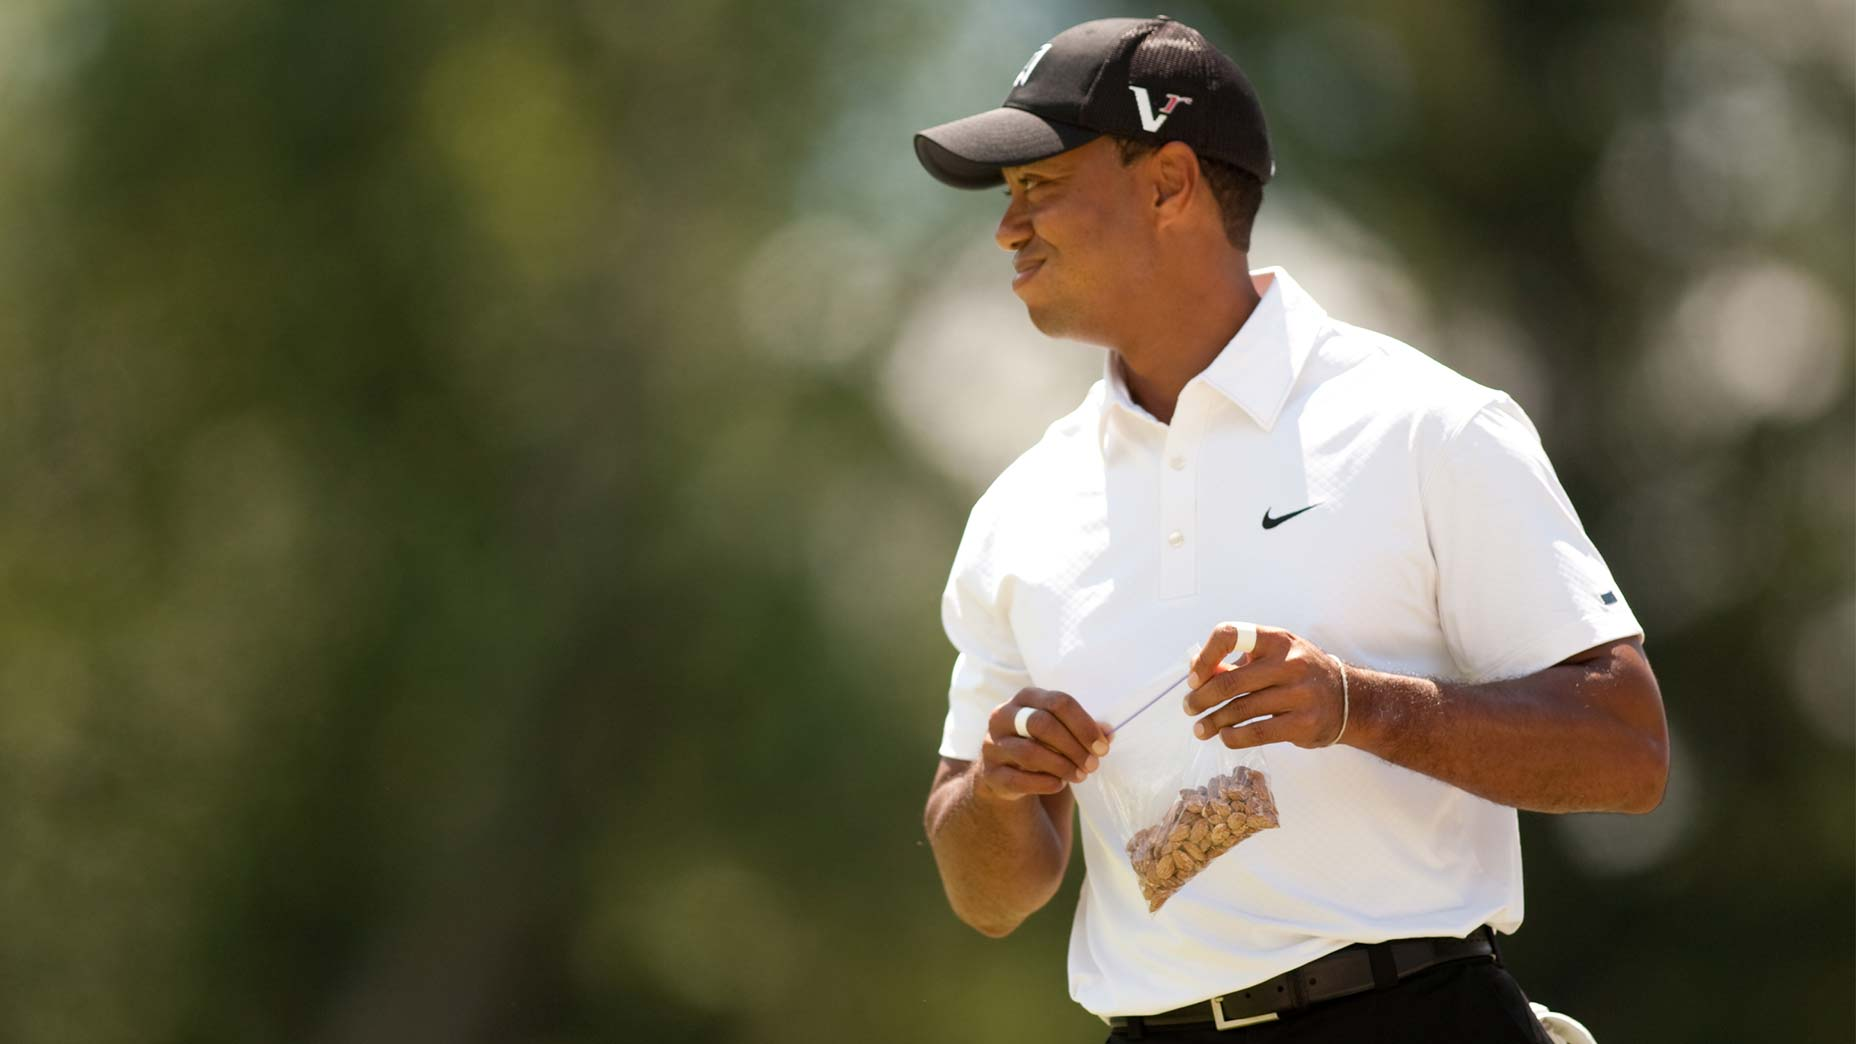 Tiger Woods eats a snack during a round.